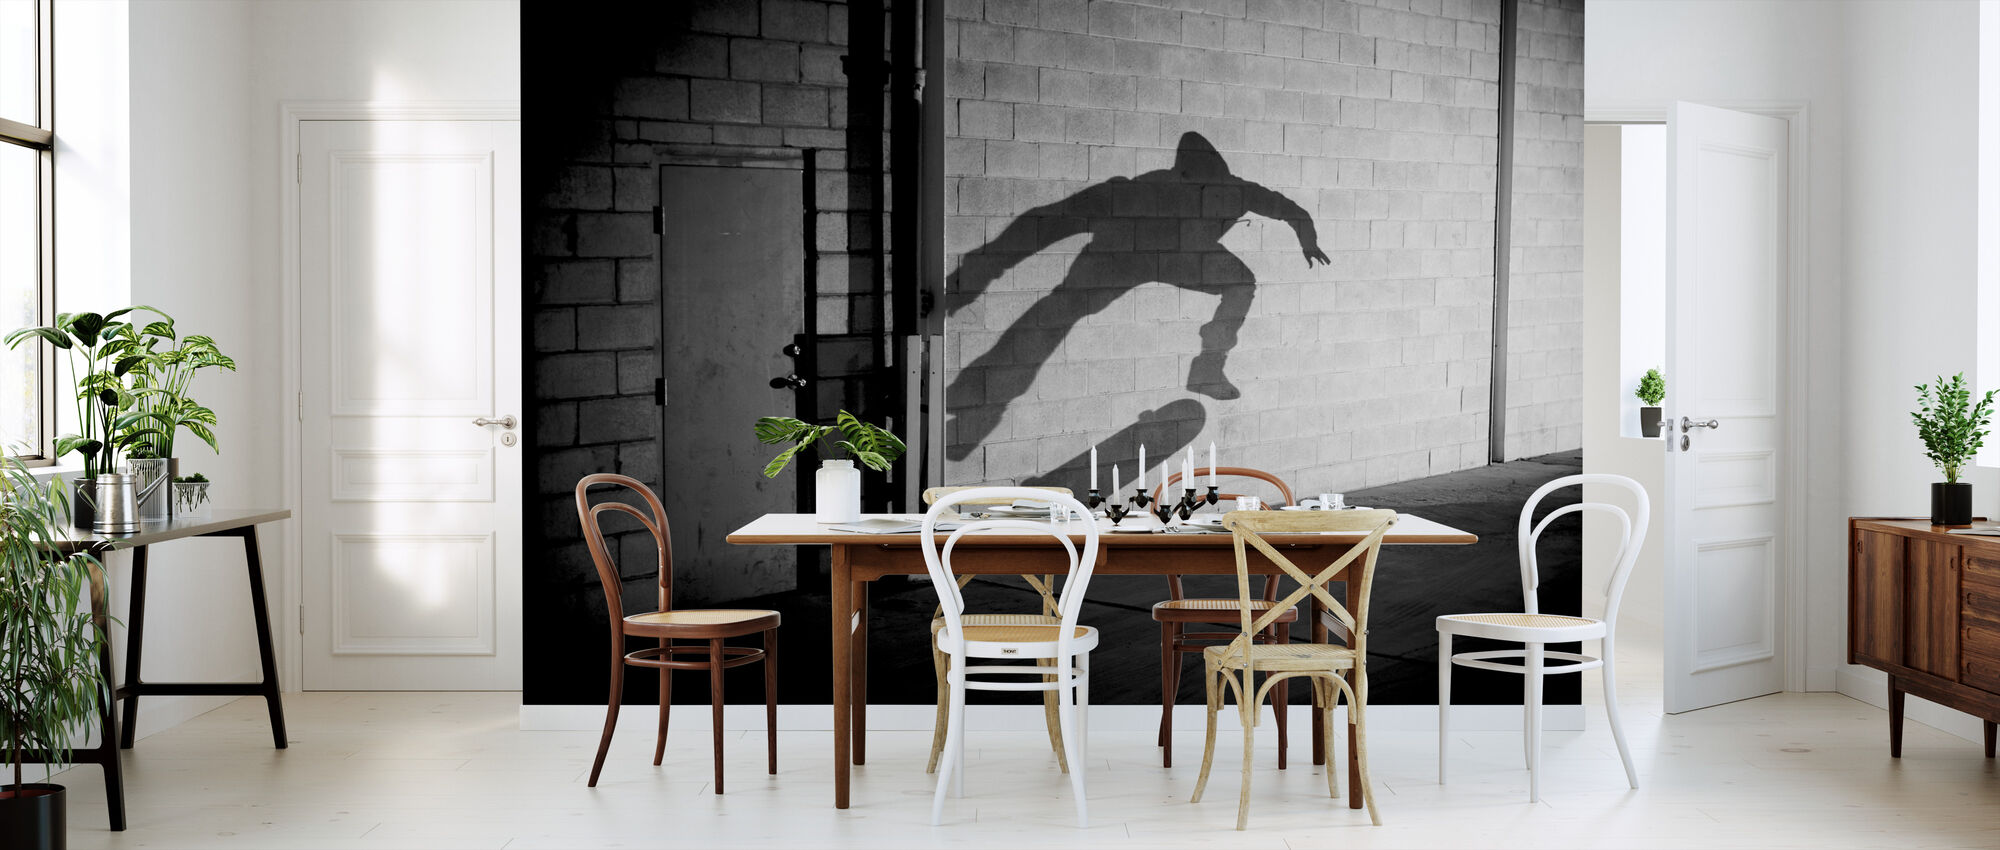 Shadow Skateboarder - Behang - Keuken